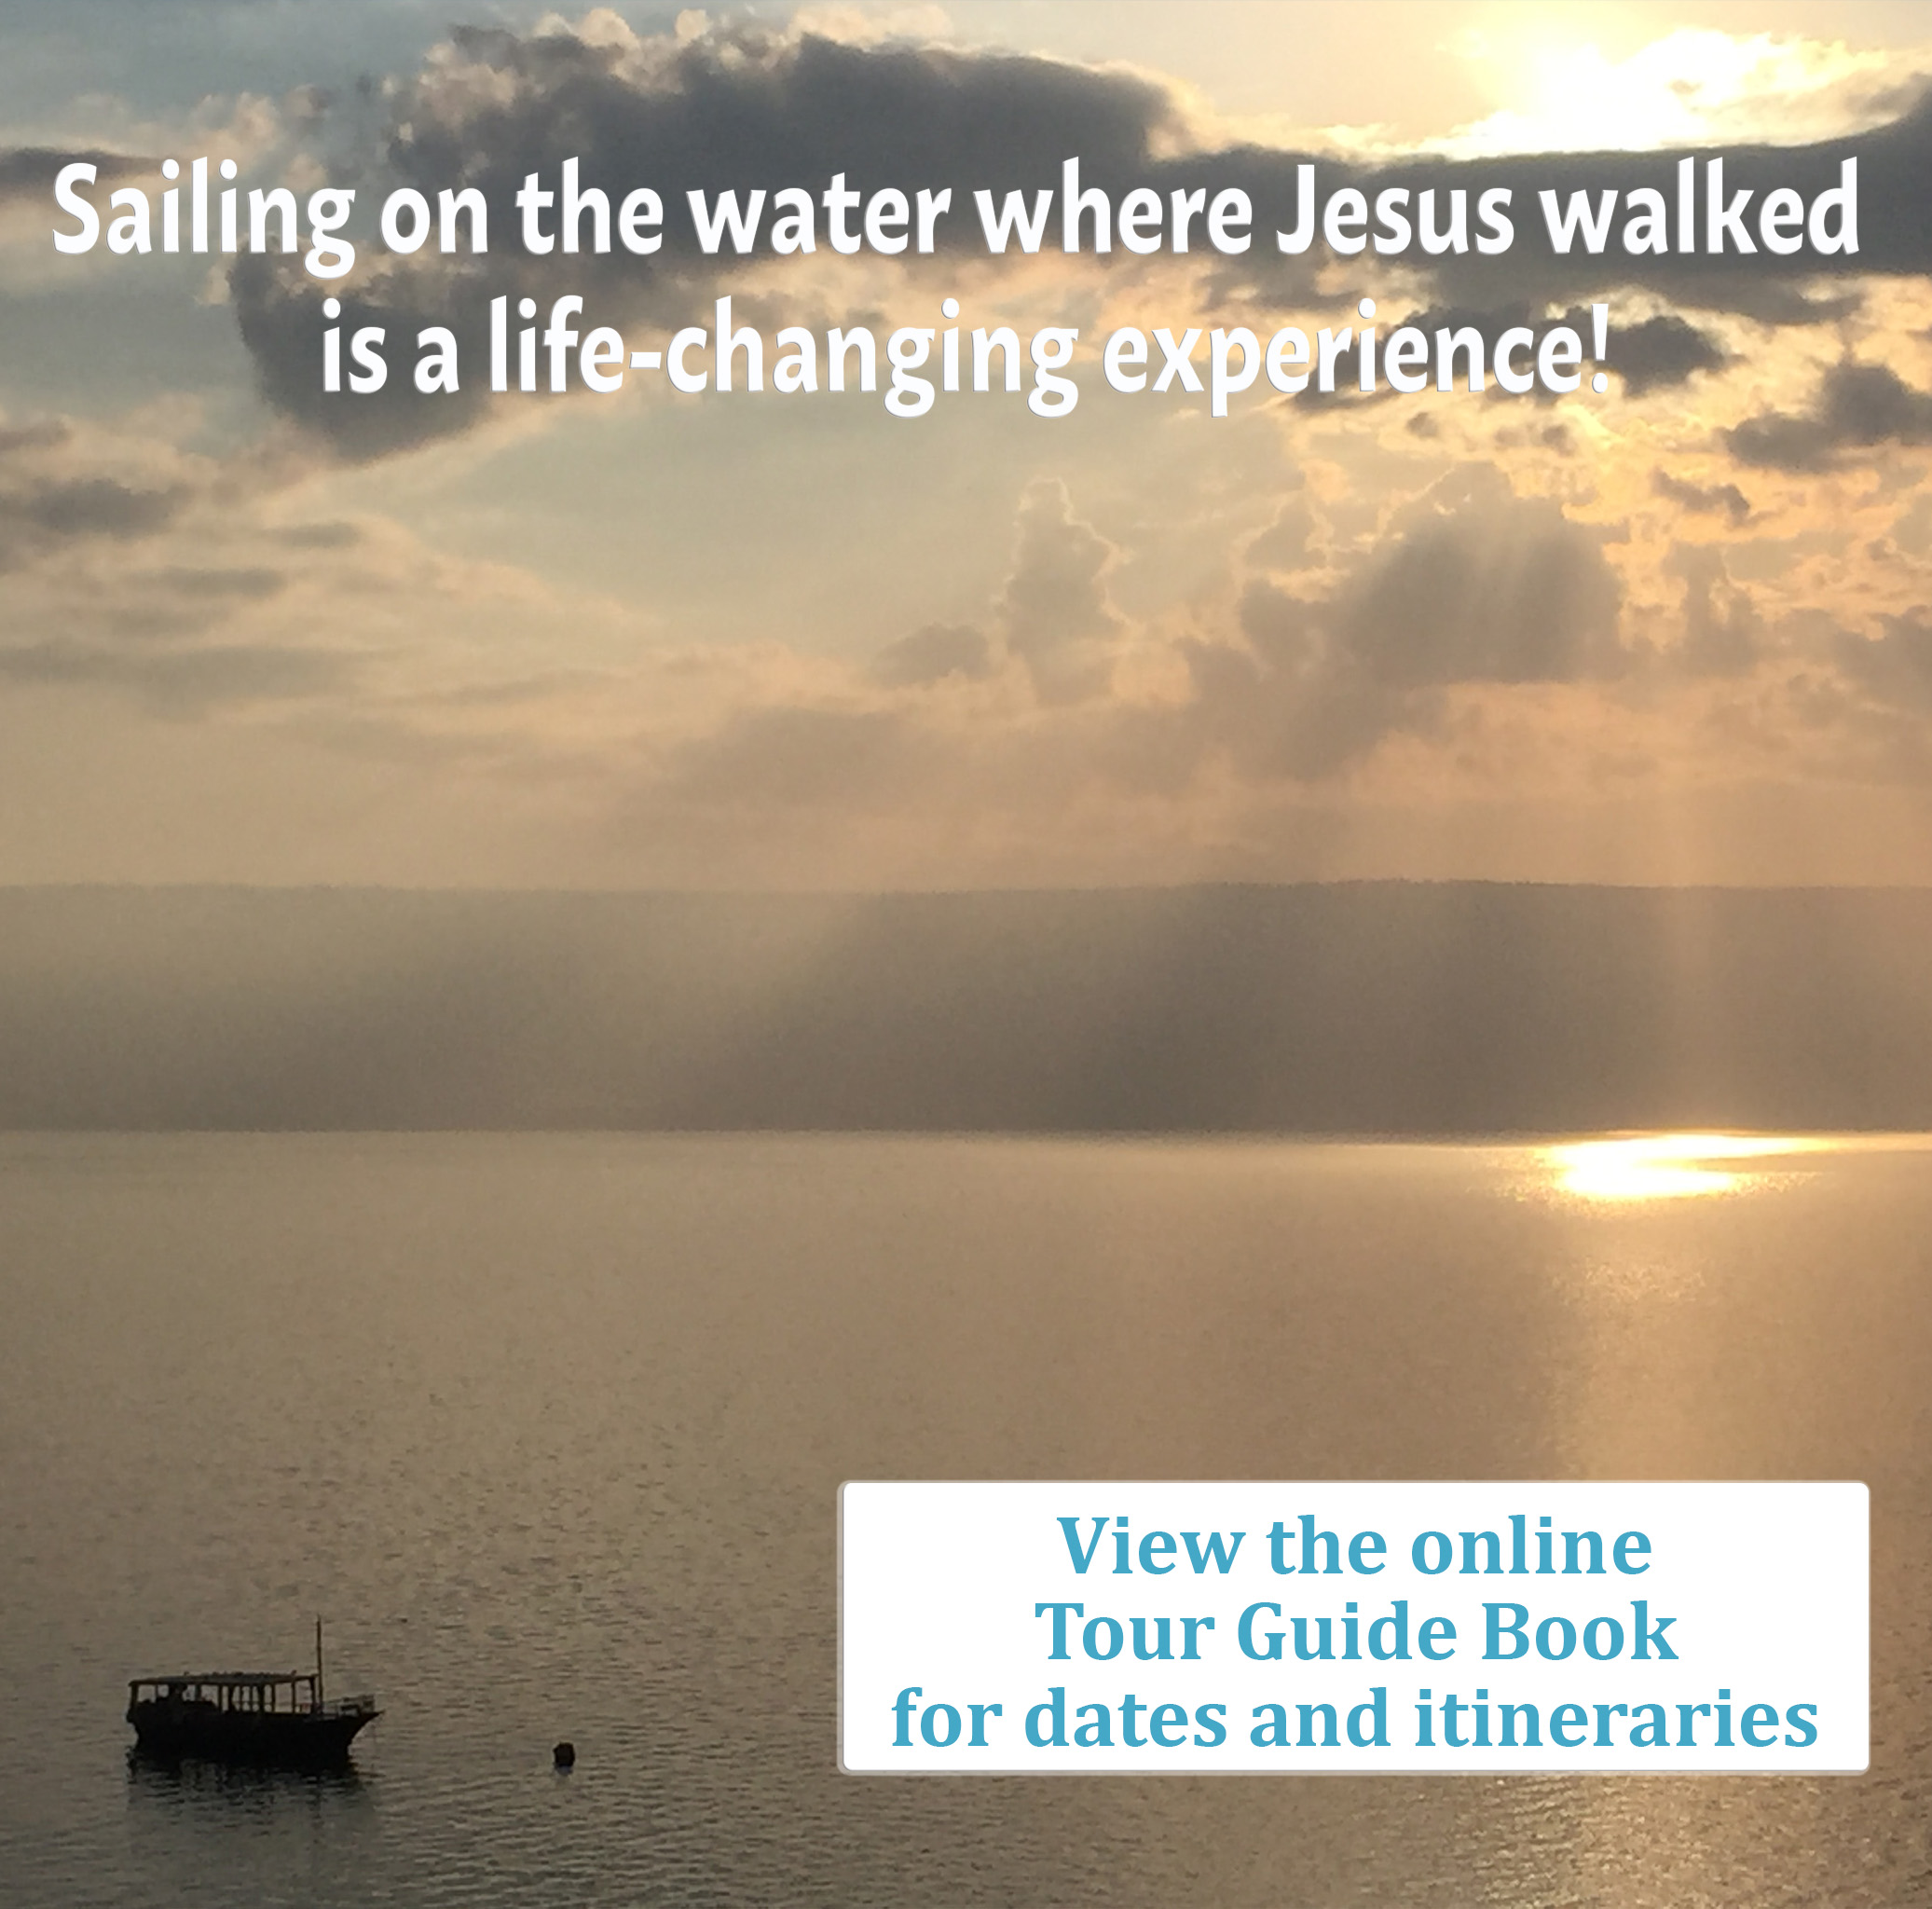 Sailing where Jesus walked